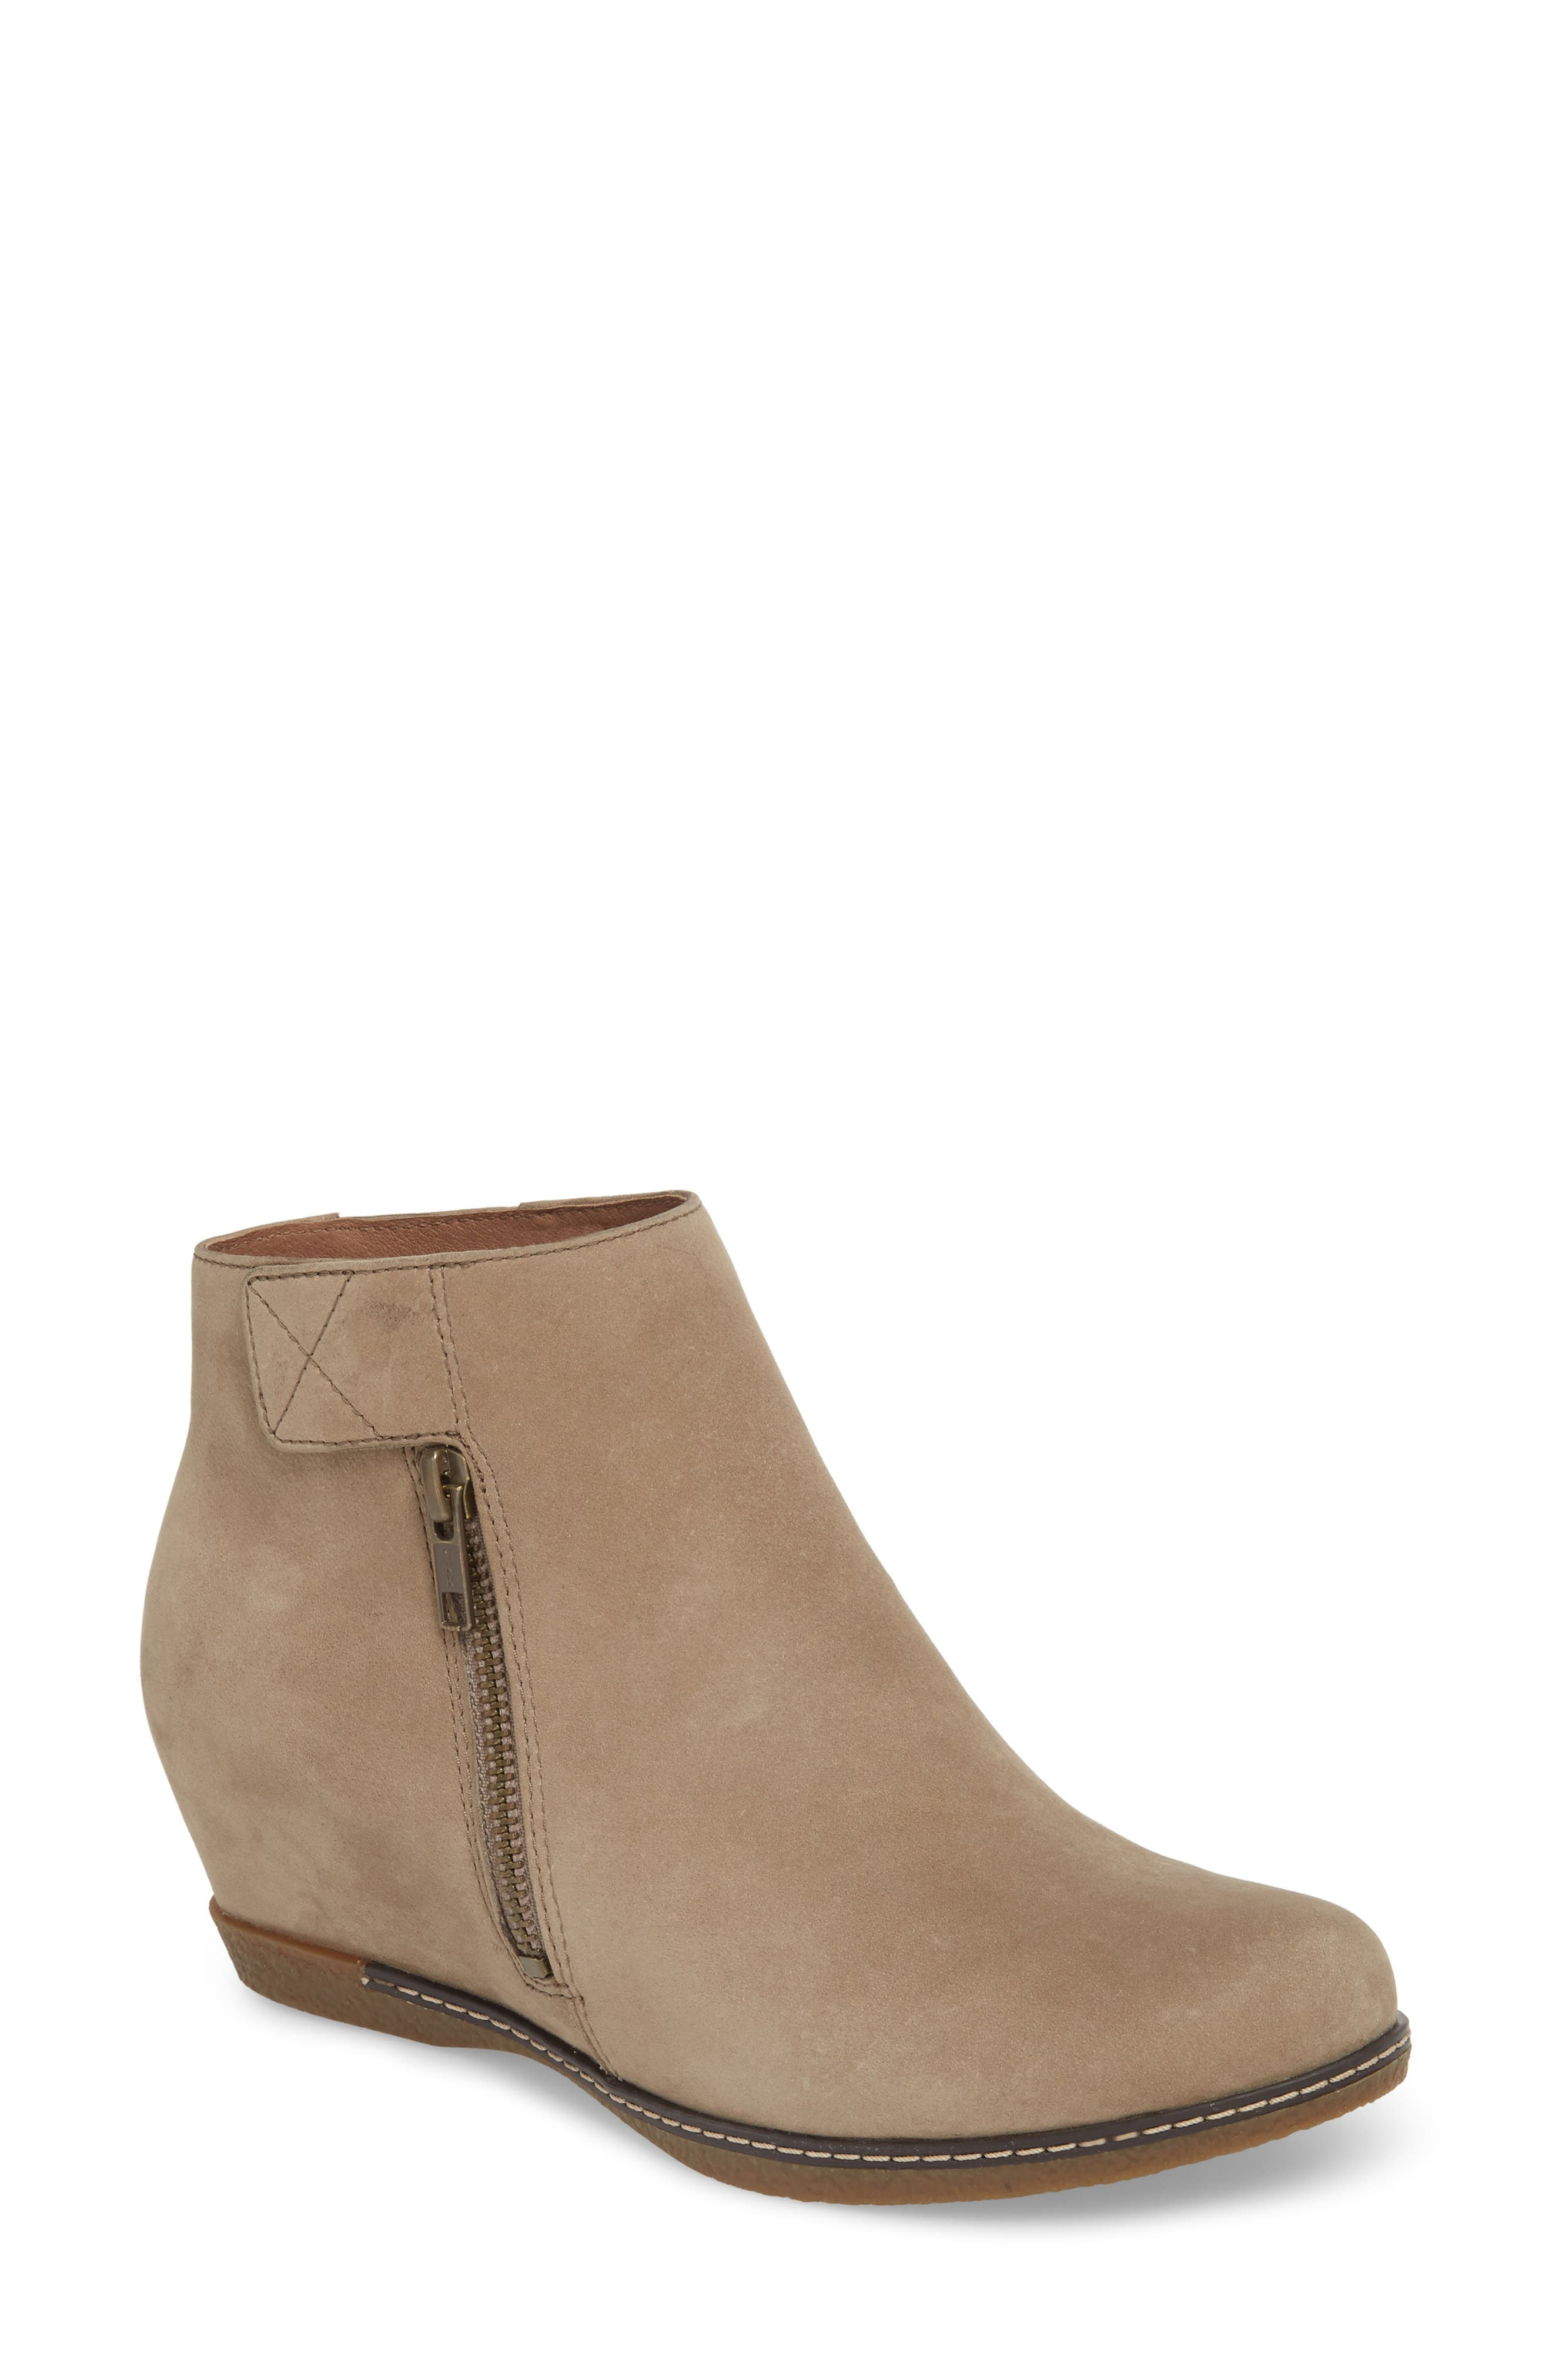 Leanna Bootie,                             Main thumbnail 1, color,                             Taupe Burnished Nubuck